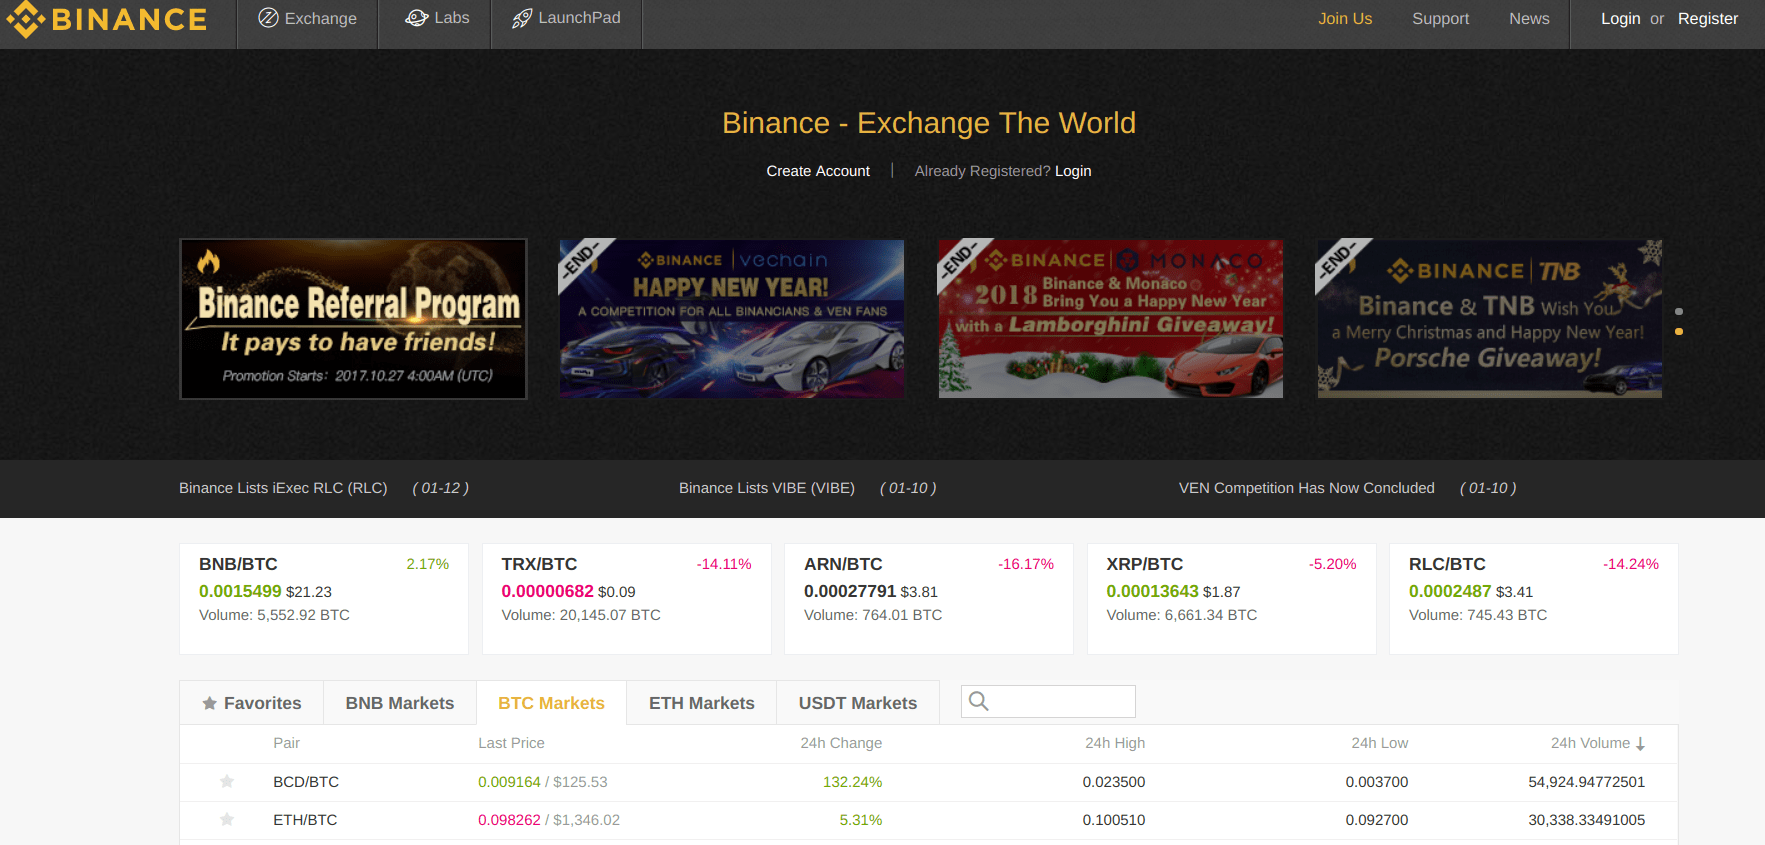 how to sign up to binance